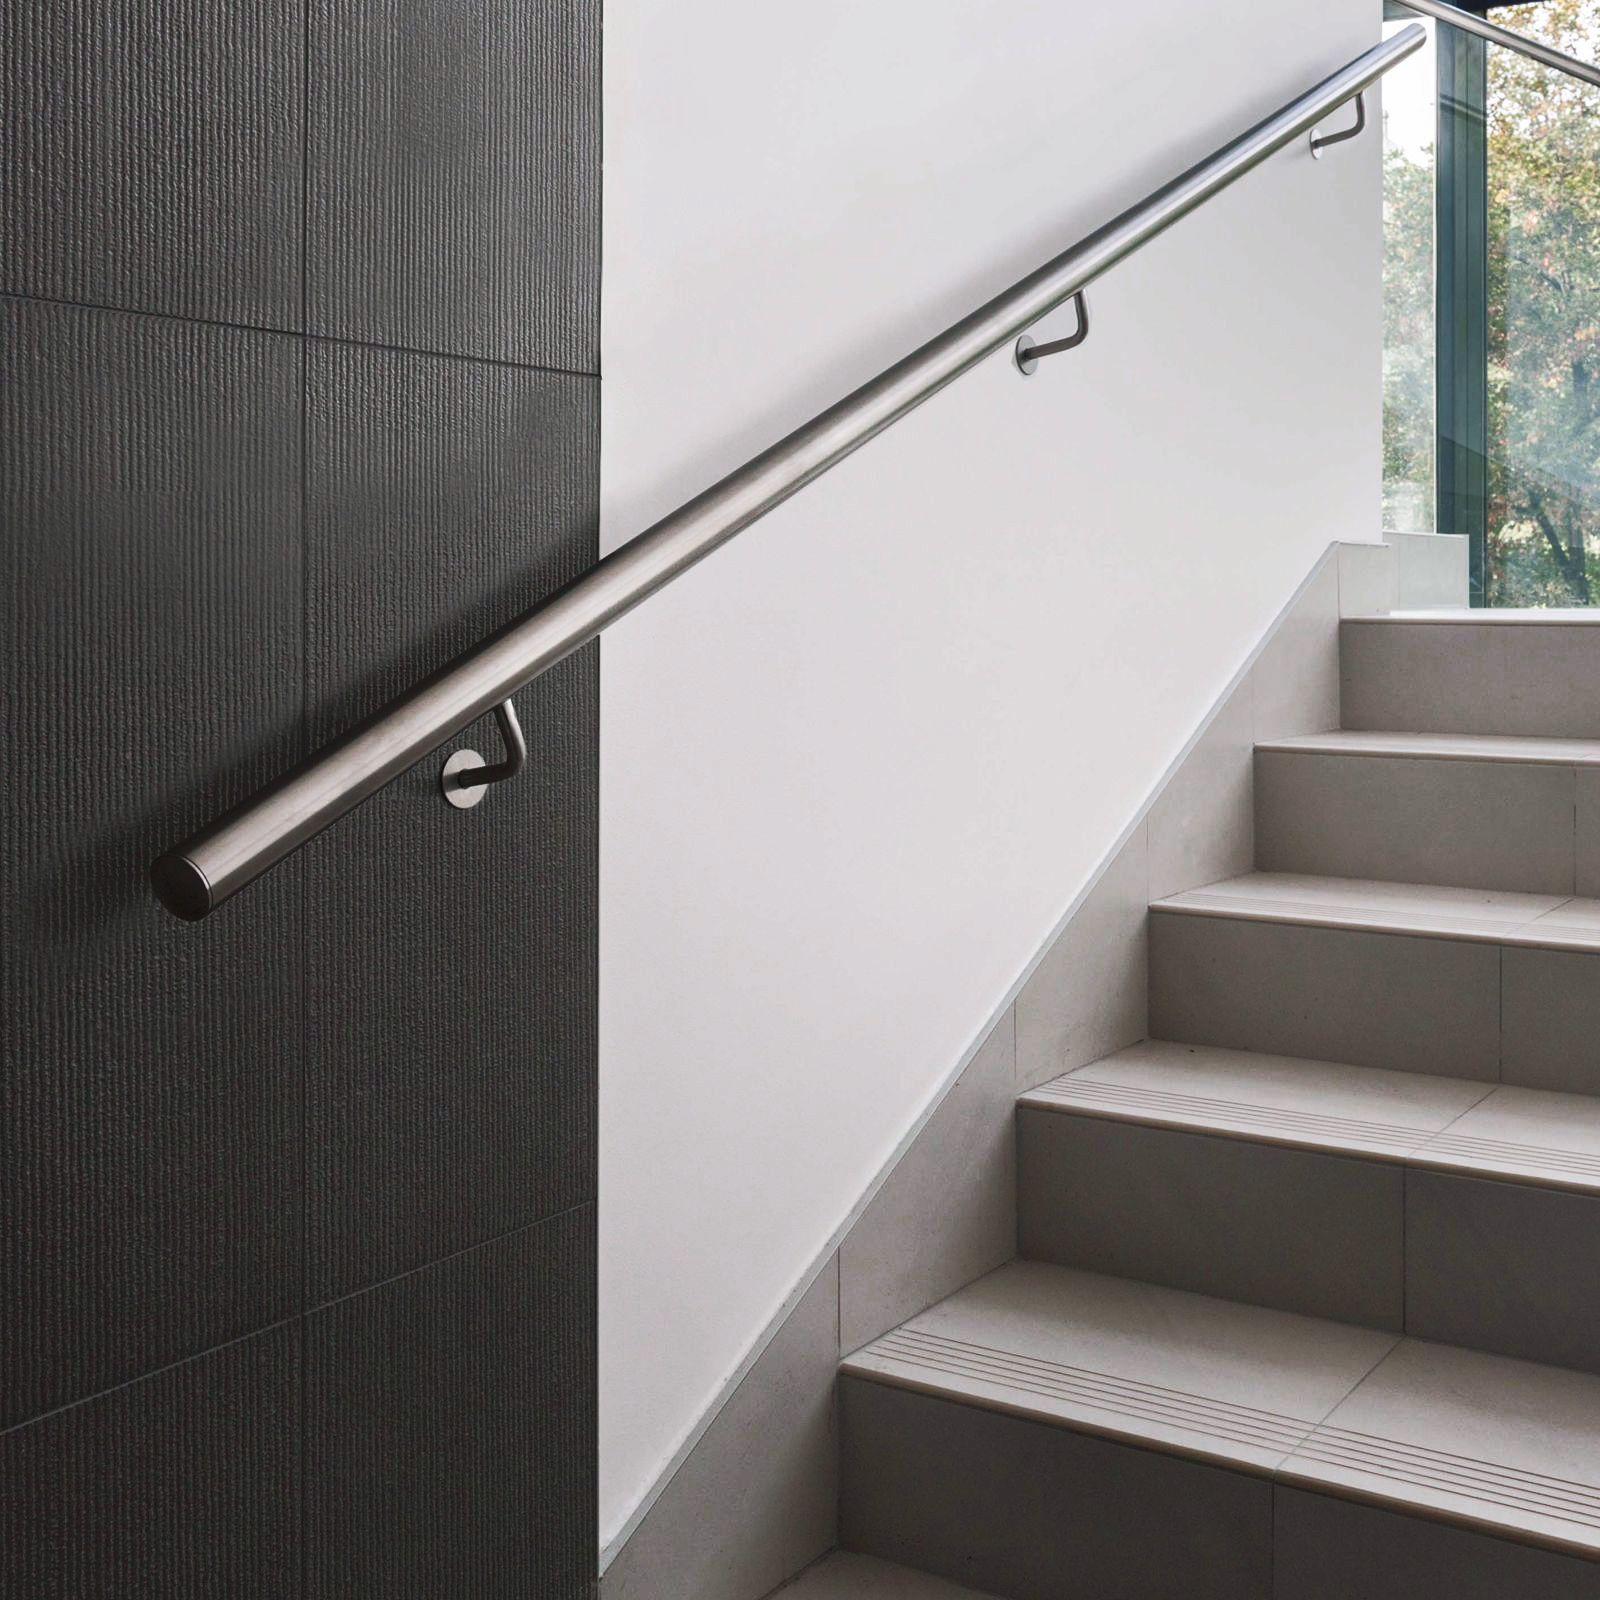 Stainless steel railing or guardrail